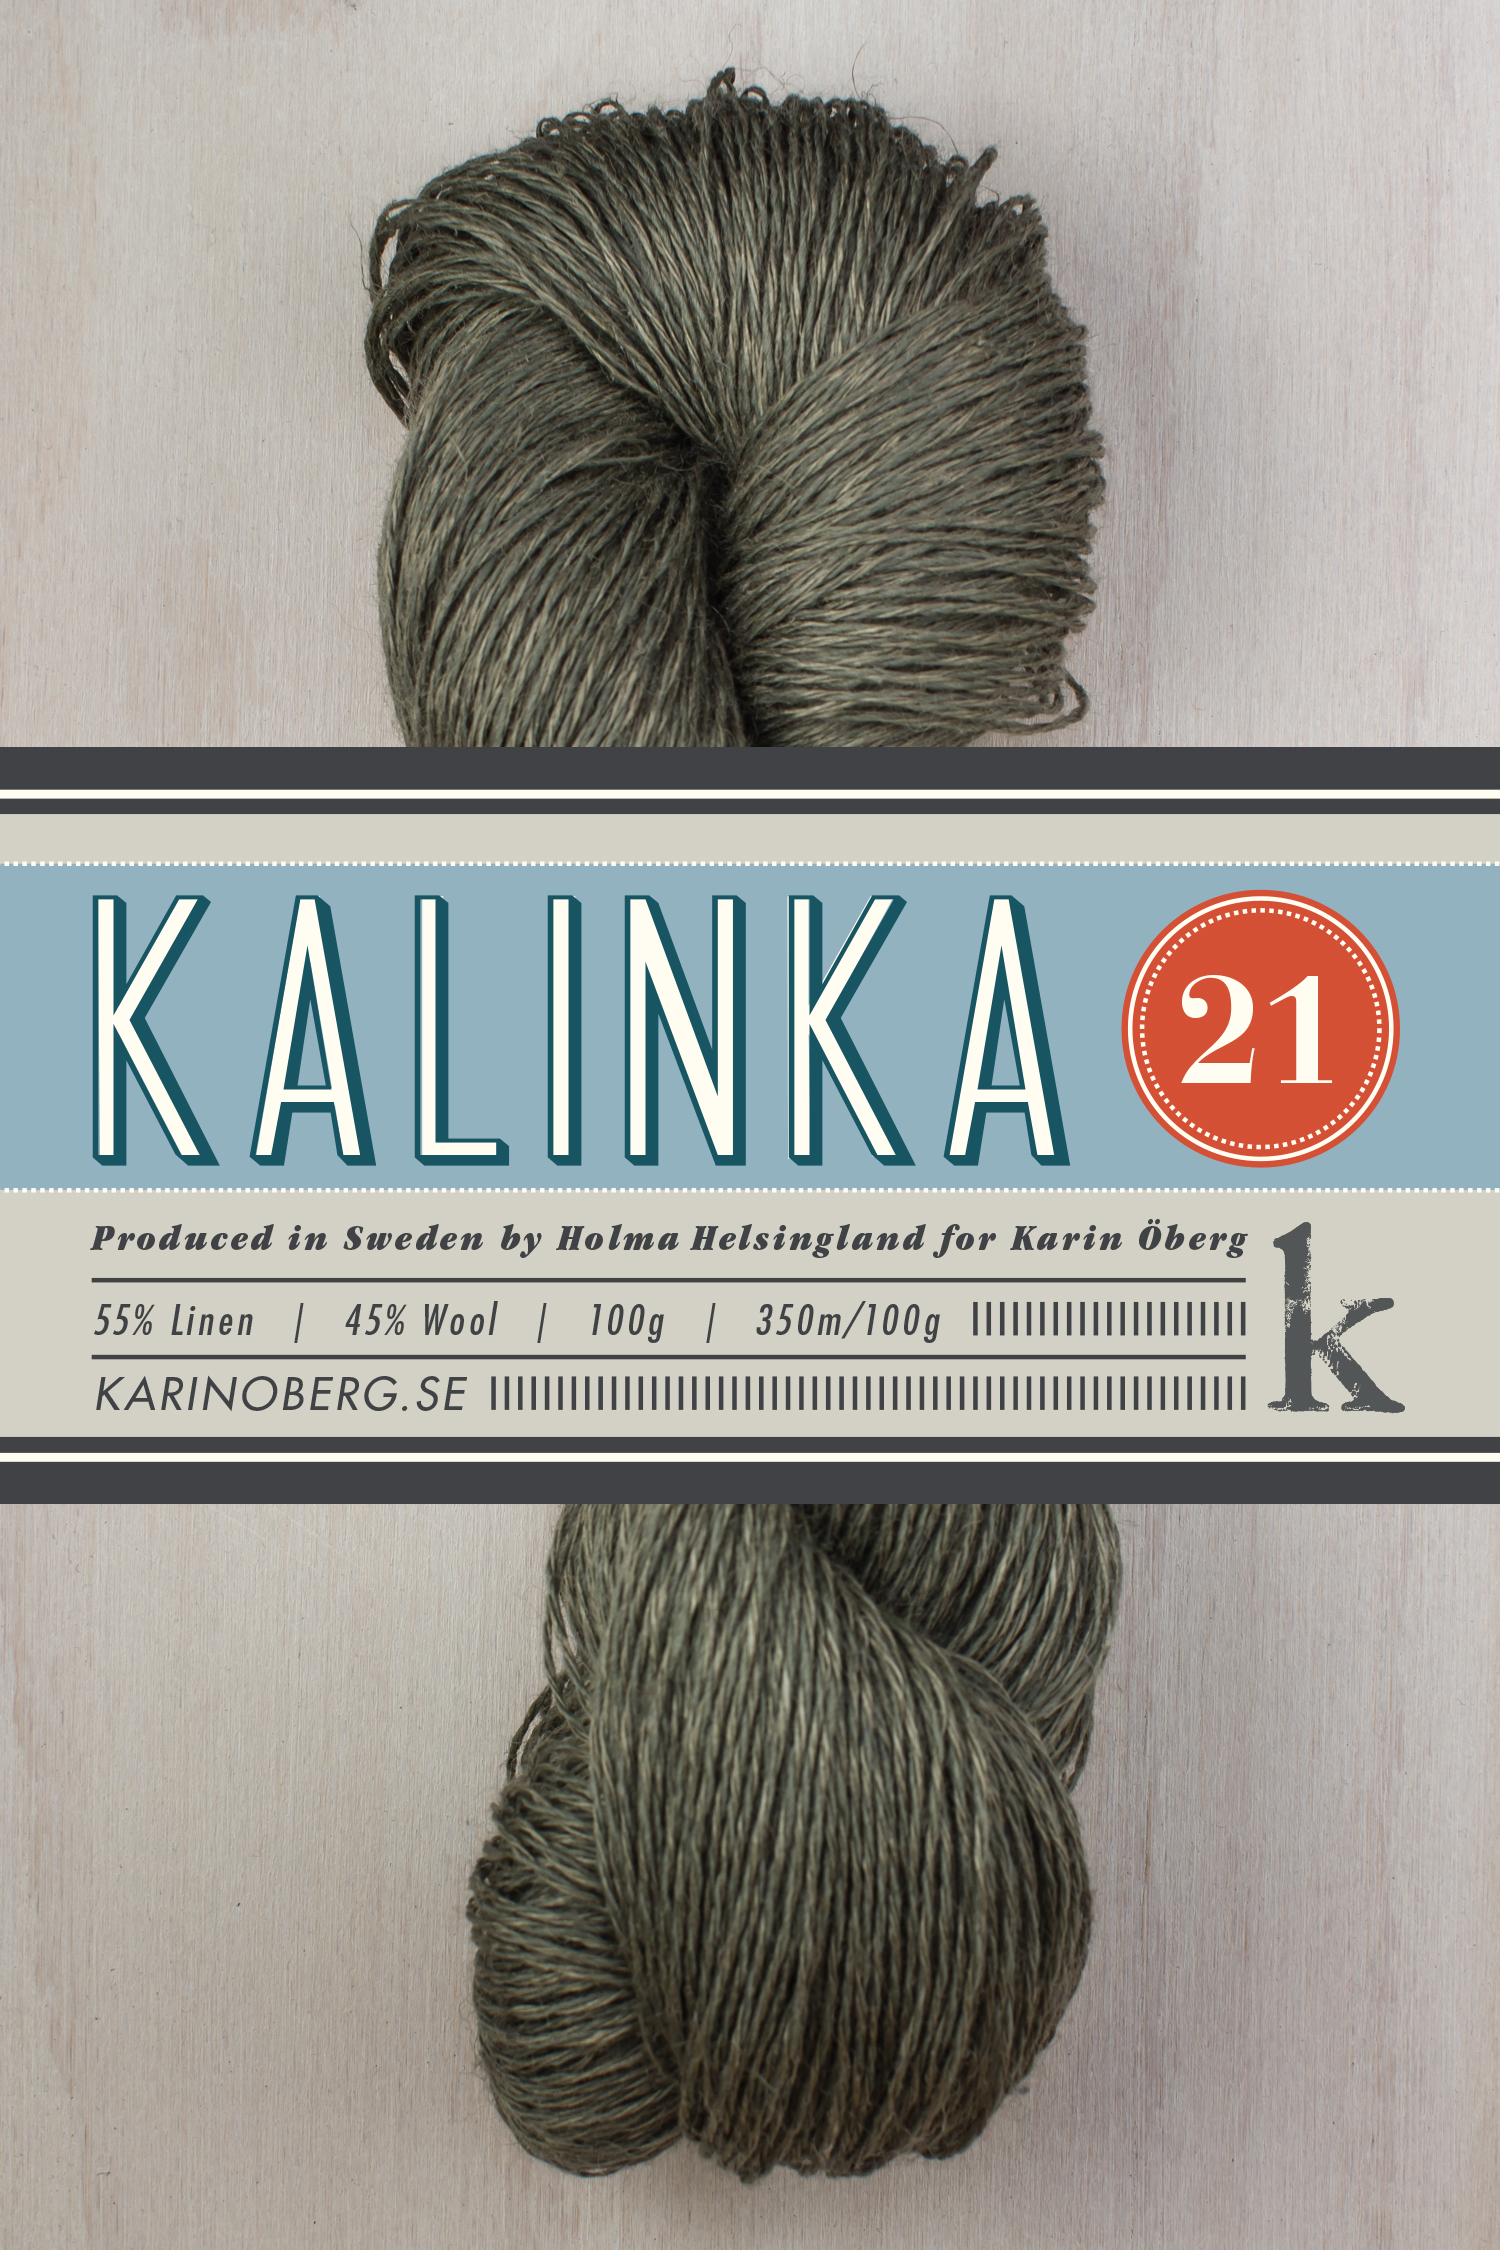 Kalinka 21, 55% linen 45% wool (  click picture for more colors)    In 2015 I added another yarn quality to my selection, Kalinka 21. The yarn consists of 55% linen and 45% lambs wool.     Yarn facts  350sts/100g, gauge approx. 26sts/10cm on 3mm needles   Washing instructions  Hand wash or machine wash cold with gentle cycle. Line dry.